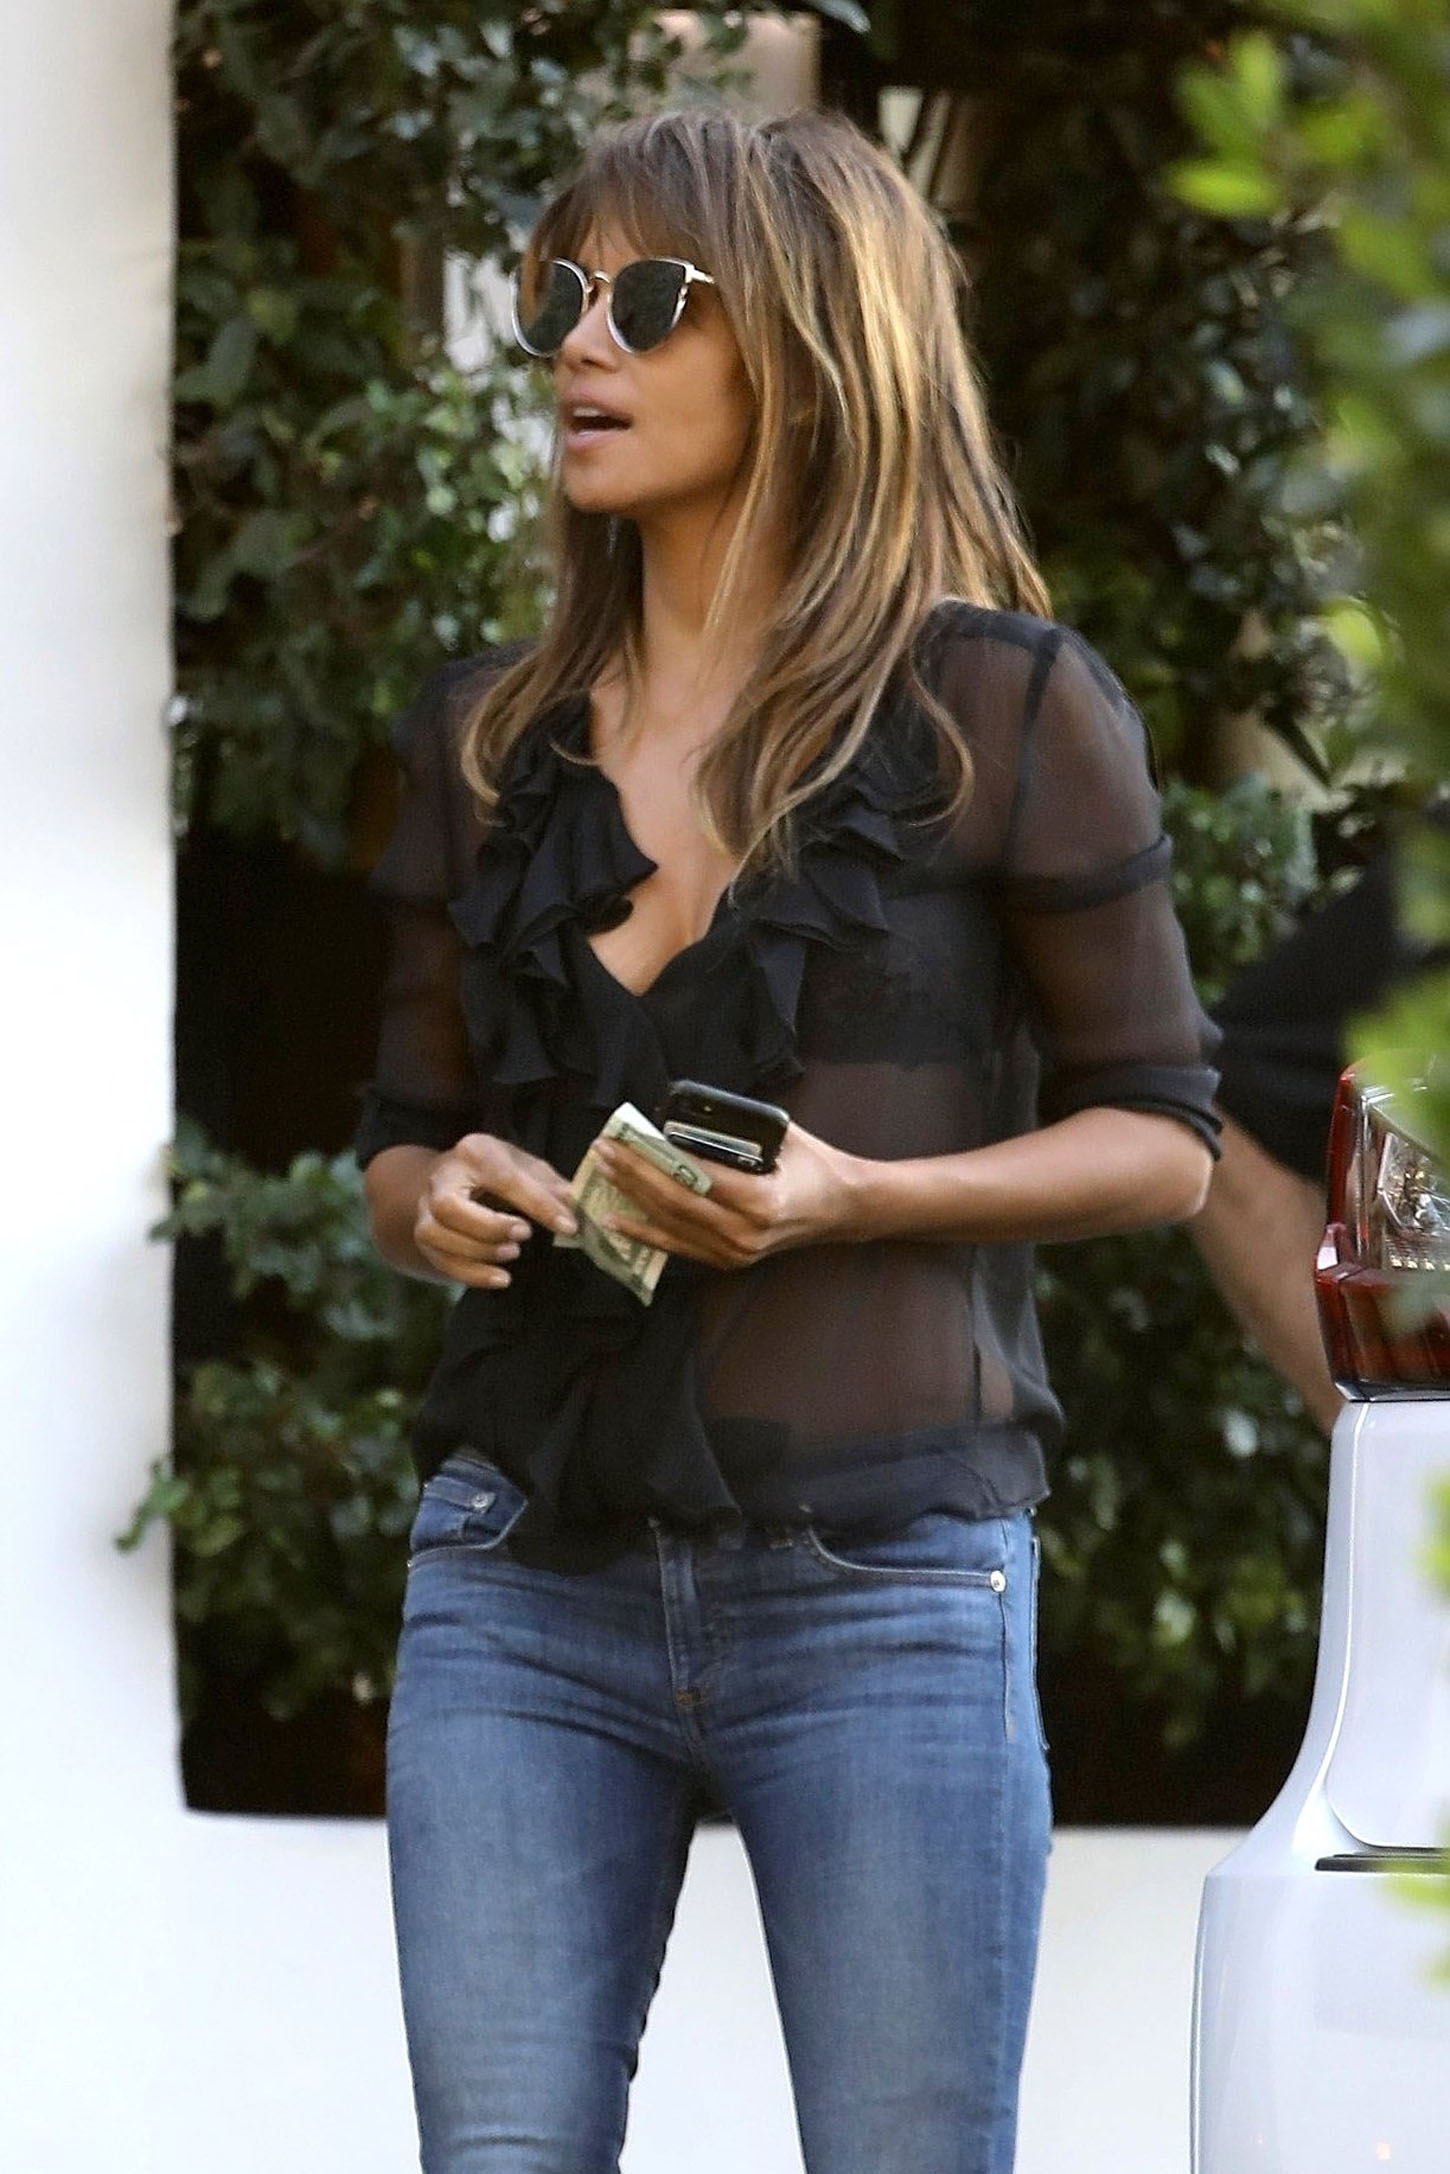 West Hollywood, CA  - *EXCLUSIVE*  - A bubbly Halle Berry chats with her friends at valet after having lunch this afternoon at Cecconi's.  Halle wore a sexy sheer top for today's lunch which had her older male friend take a few double looks at her to bring a big smile to her face.  Pictured: Halle Berry  BACKGRID USA 4 JANUARY 2018, Image: 359242925, License: Rights-managed, Restrictions: , Model Release: no, Credit line: Profimedia, AKM-GSI